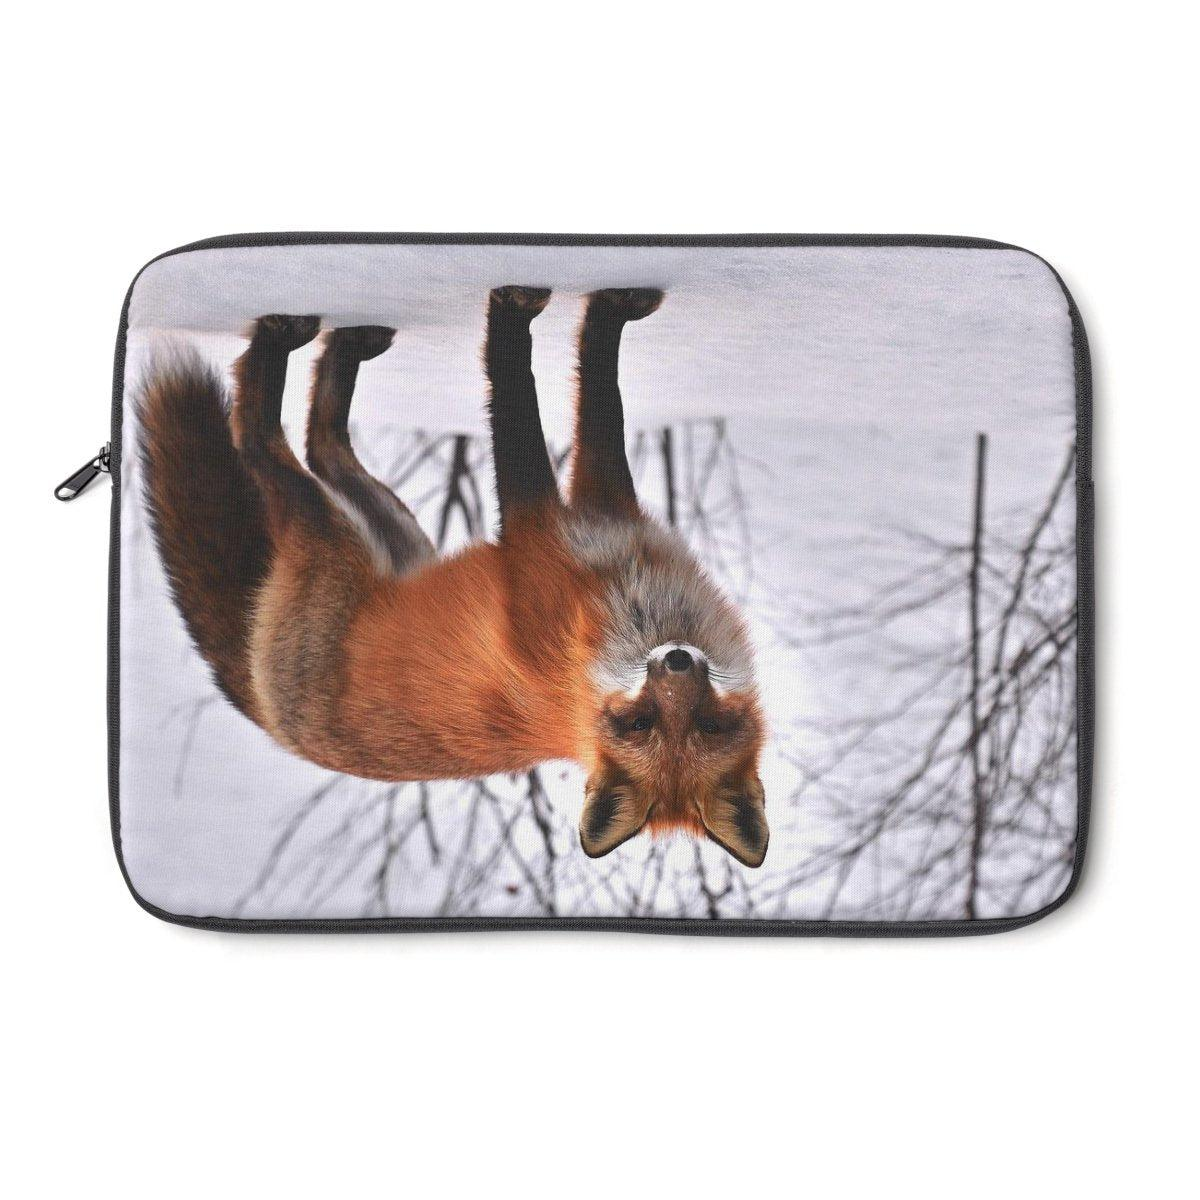 Fire fox Laptop Sleeve-Tech - Accessories - Laptop Sleeves-Printify-Très Elite